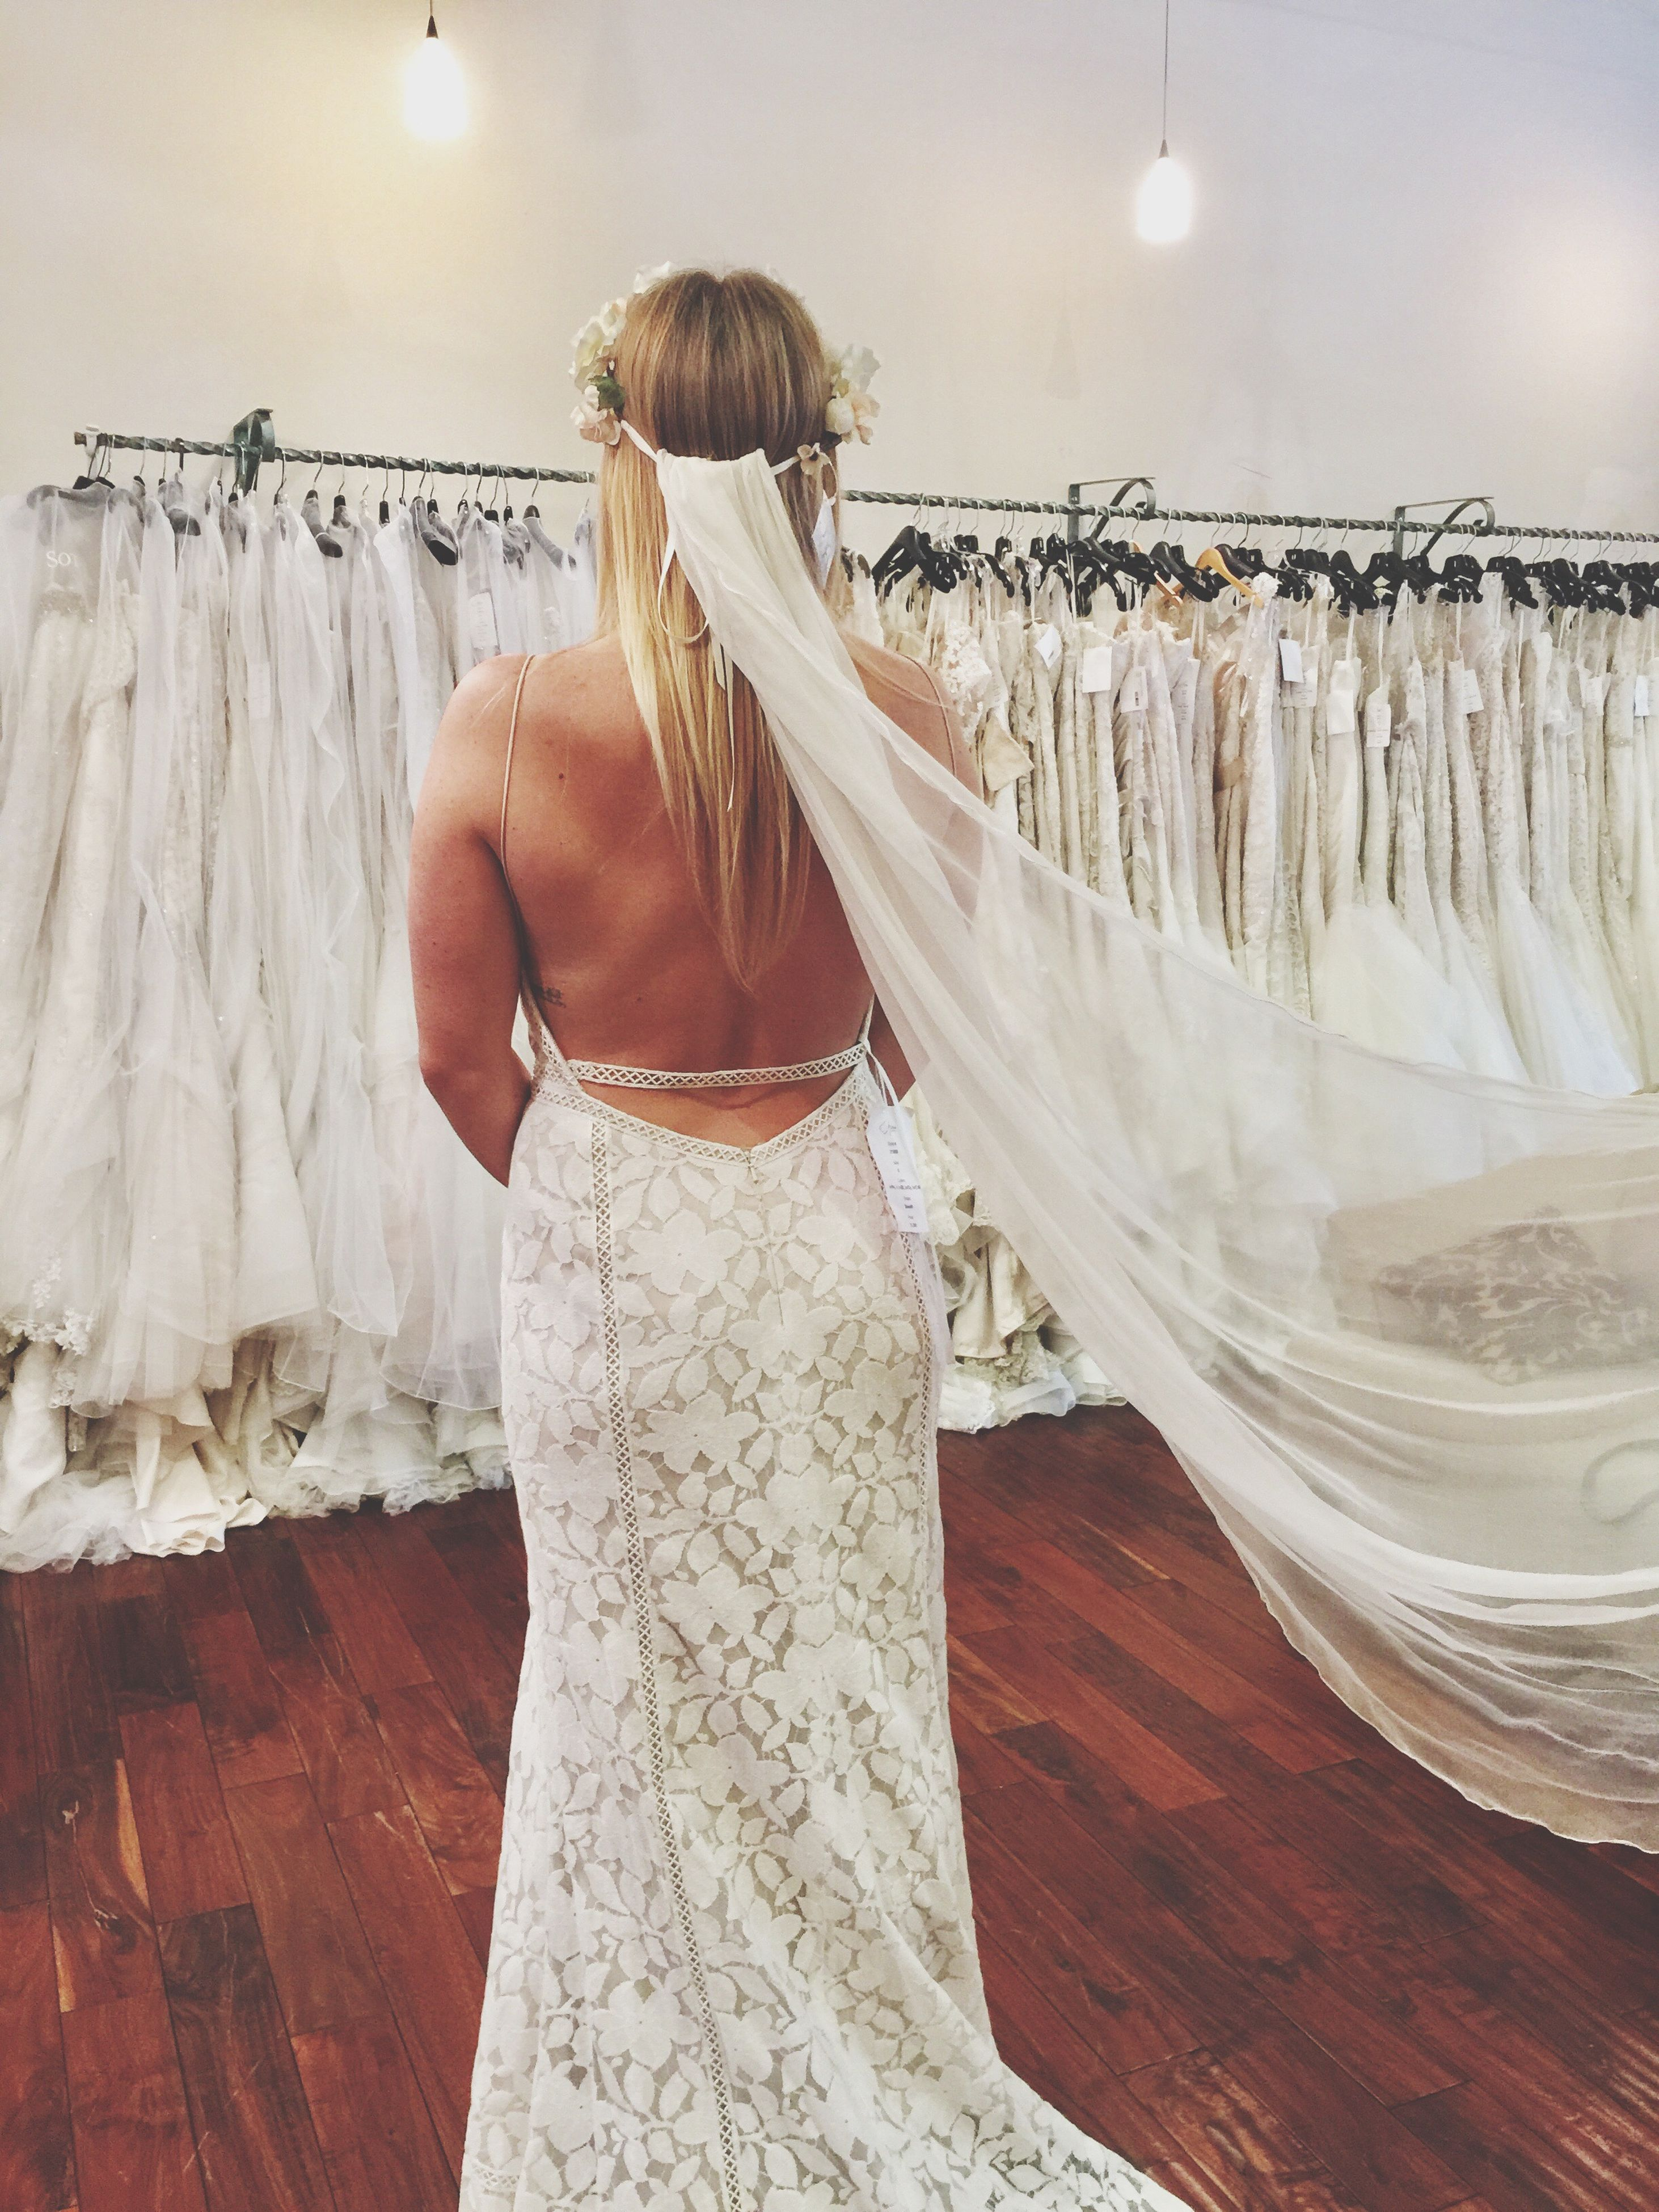 only women, one woman only, fashion, one person, rear view, adults only, business finance and industry, clothing store, indoors, people, one young woman only, wedding dress, adult, bridal shop, day